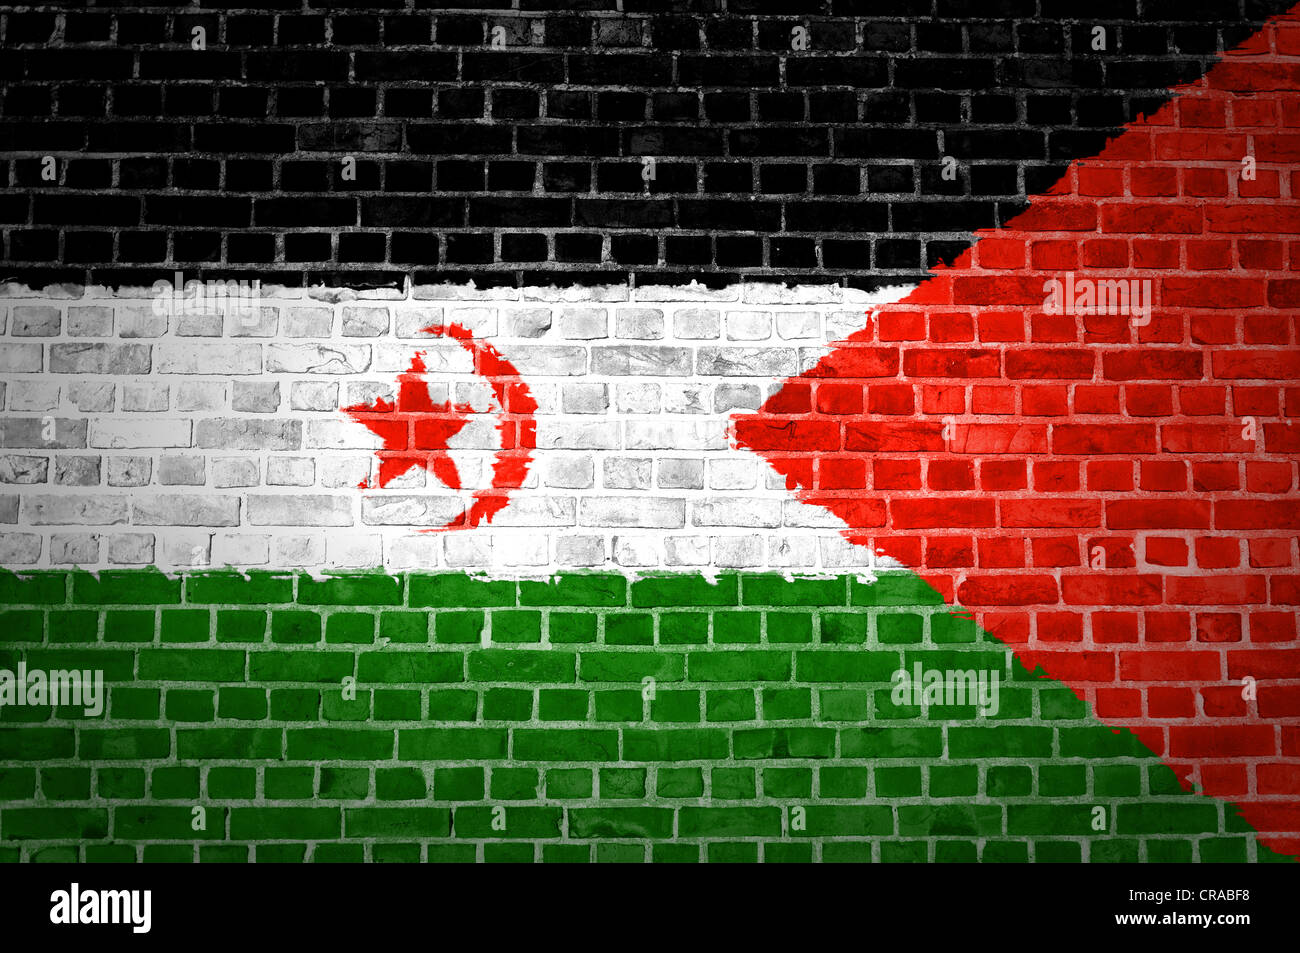 An image of the Western Sahara flag painted on a brick wall in an urban location - Stock Image